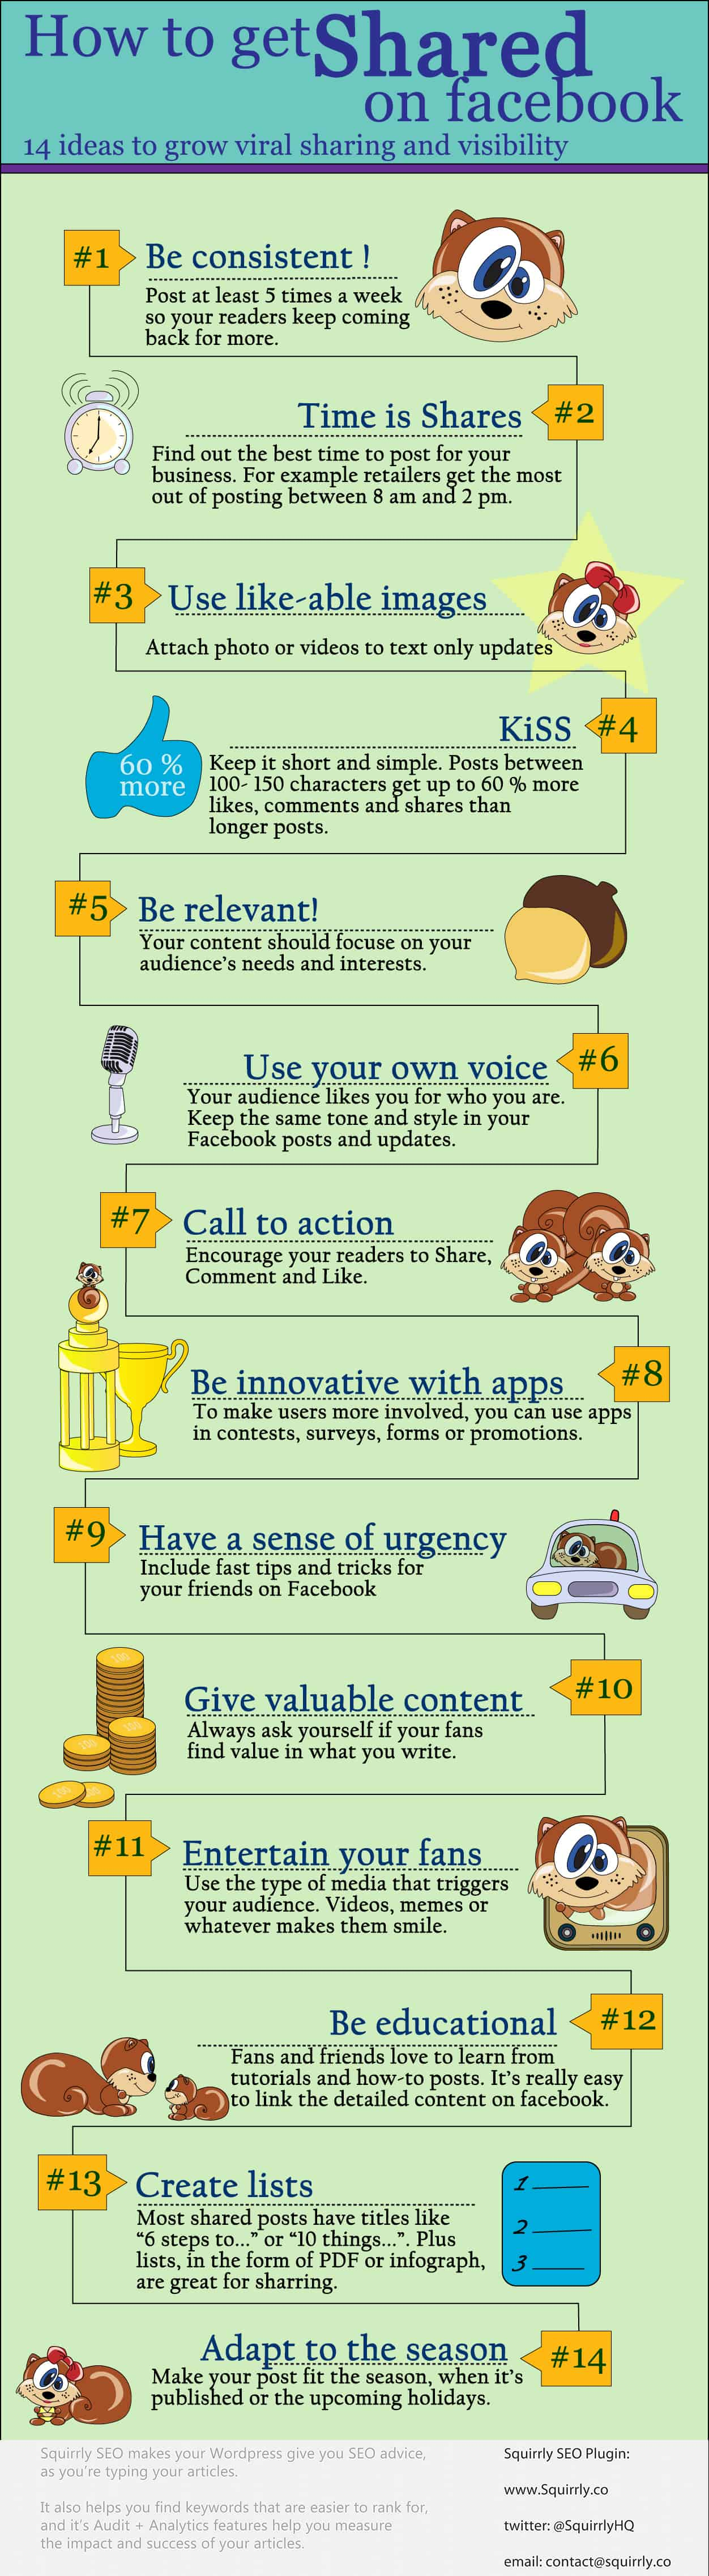 How To Get Shared On Facebook: 16 Ideas To Grow Viral Sharing And Visibility [infographic] - Boost your facebook page visibility and fan base.